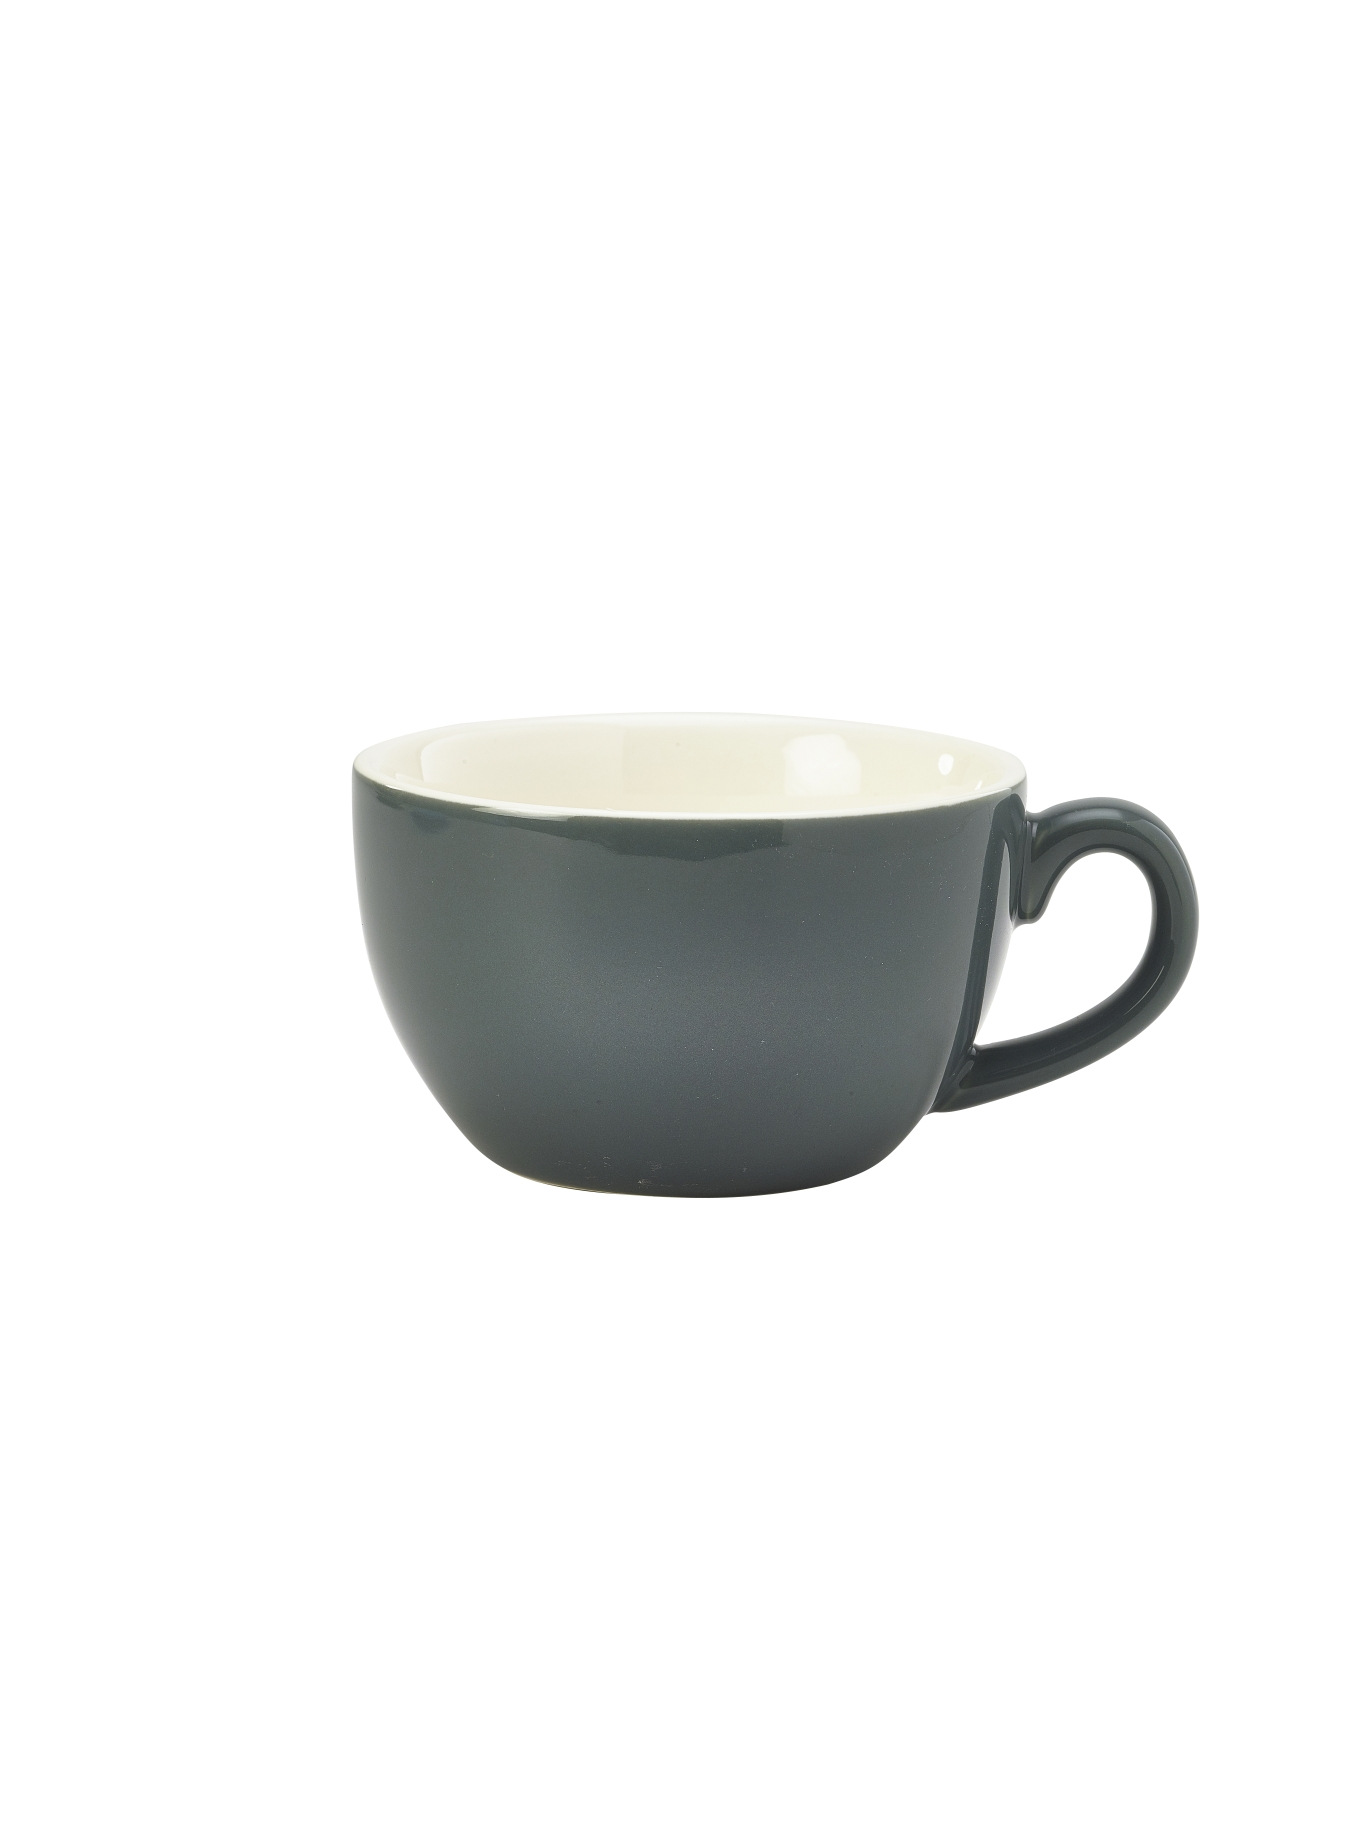 Genware Porcelain Bowl Shaped Cup 25cl Grey